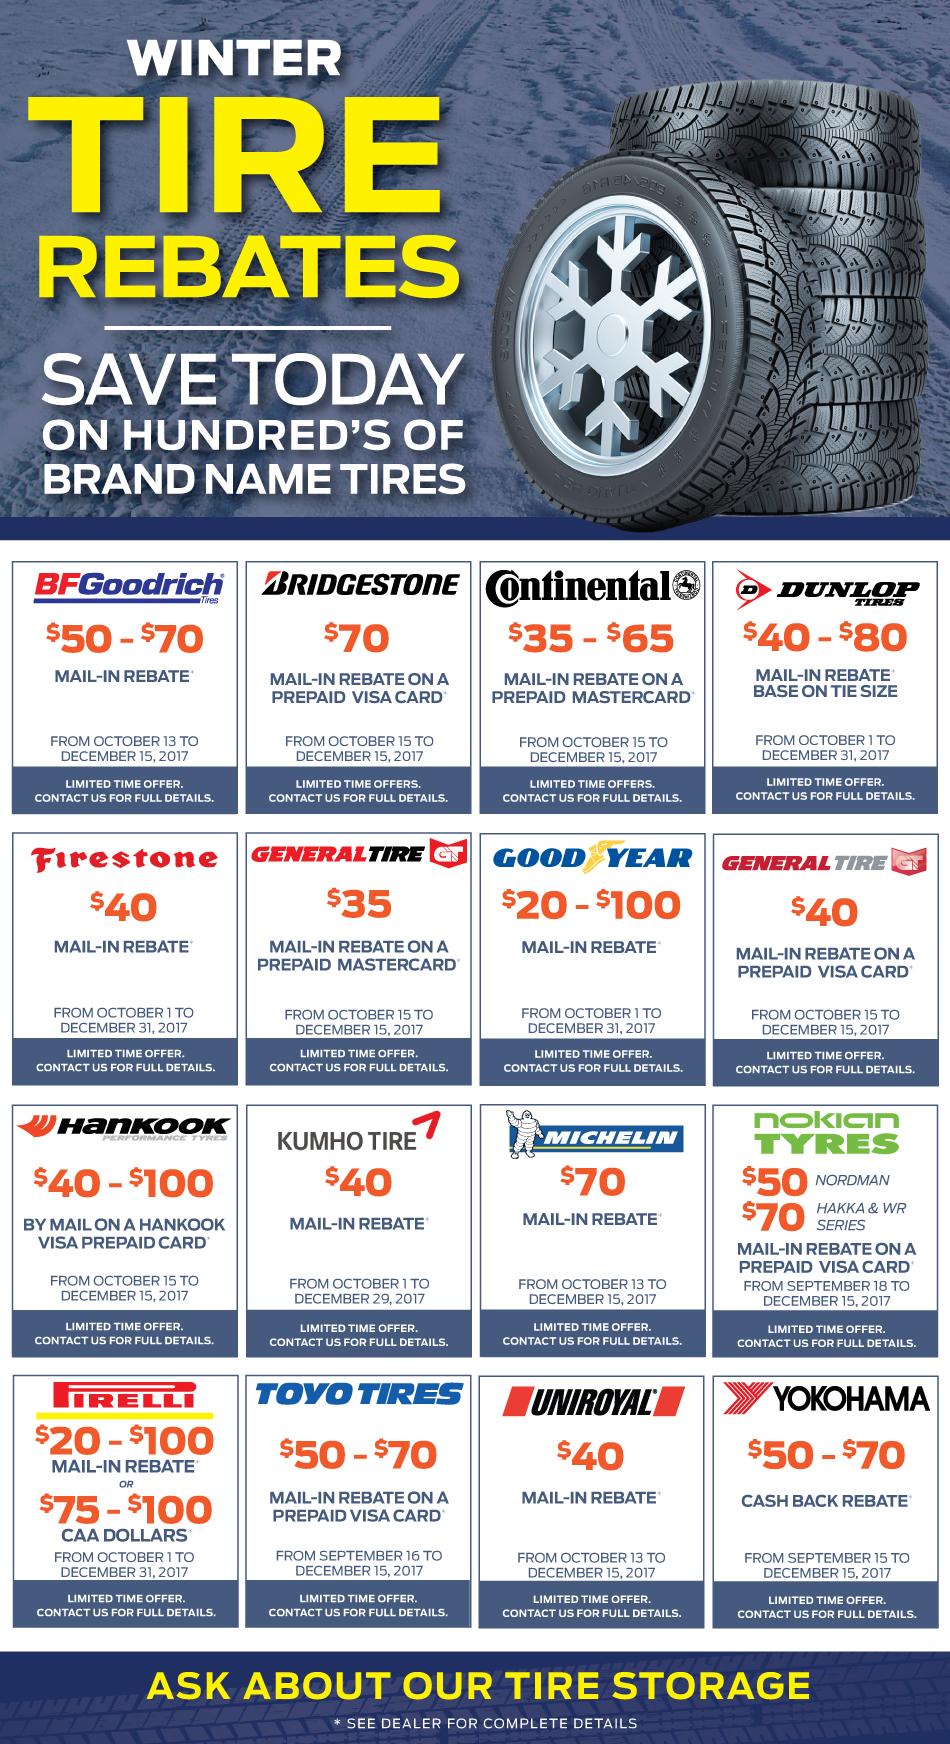 Manufacturer Winter Tire Rebates